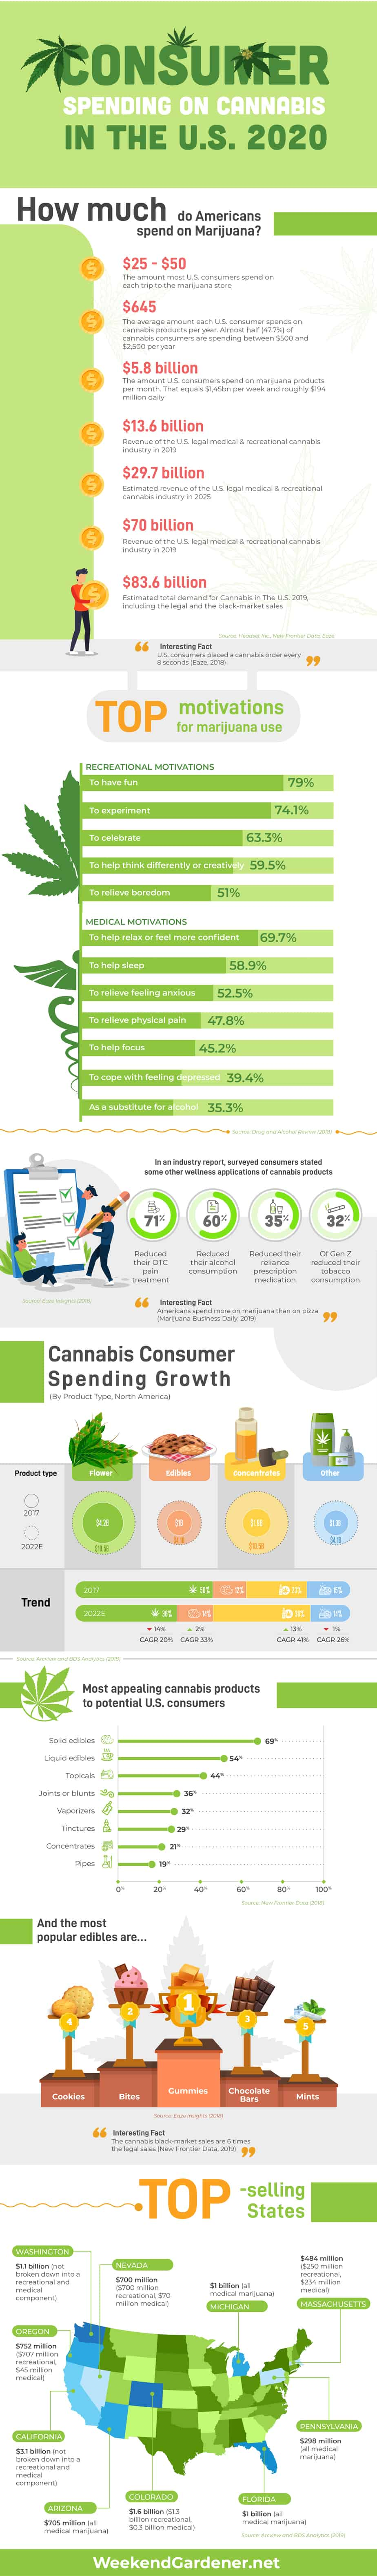 Consumer Spending on Cannabis